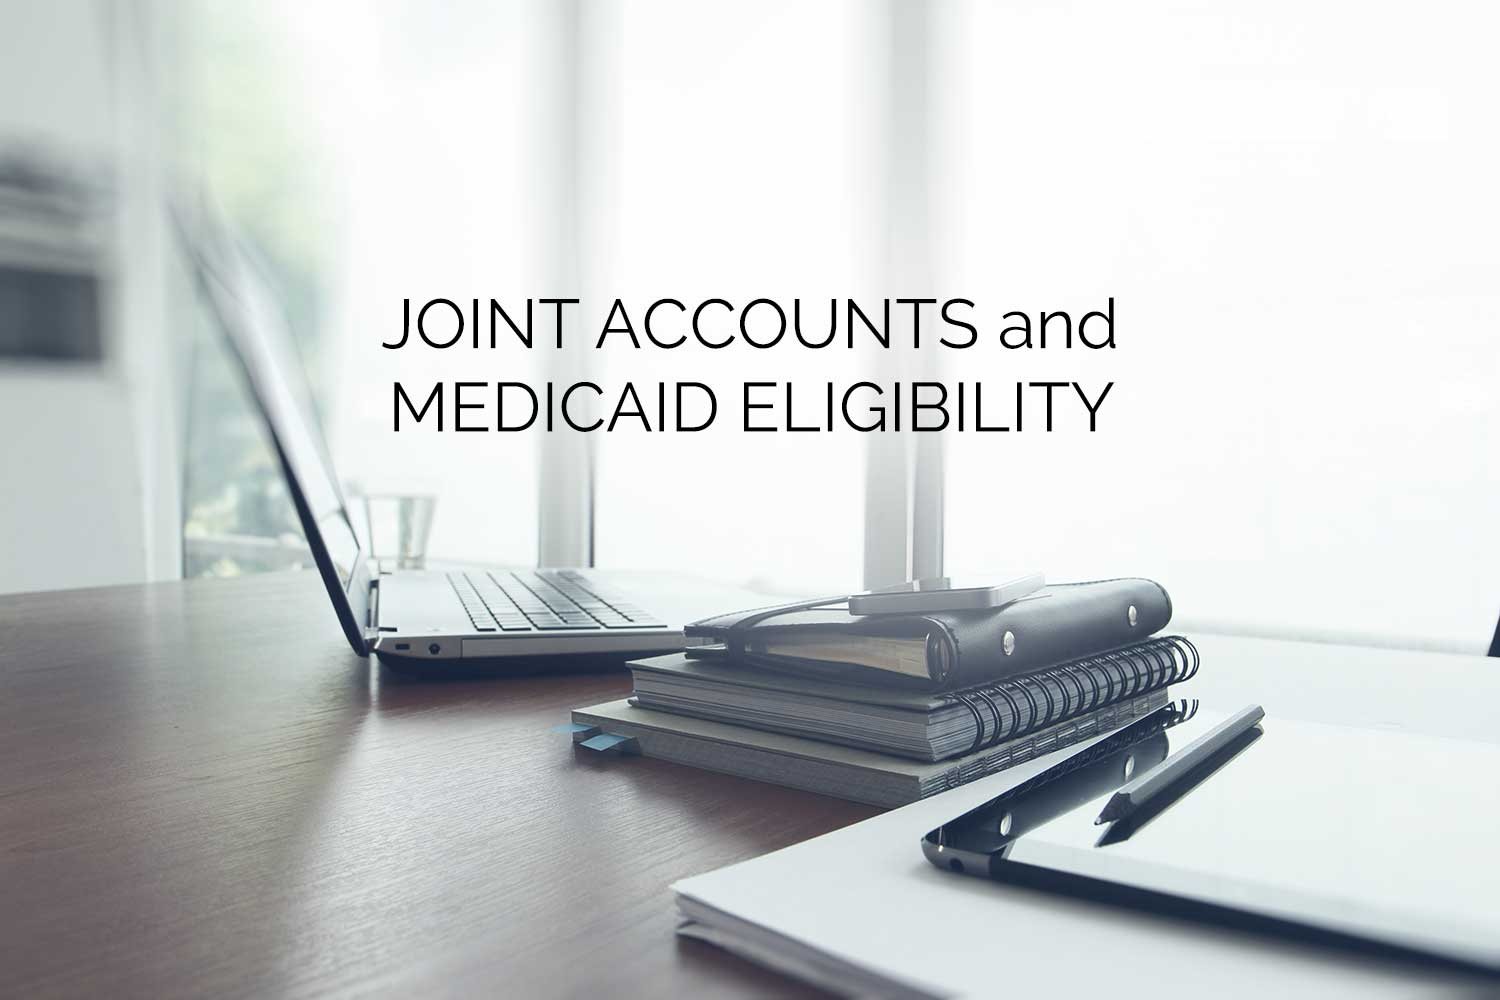 Joint-Accounts-and-Medicaid-Eligibility